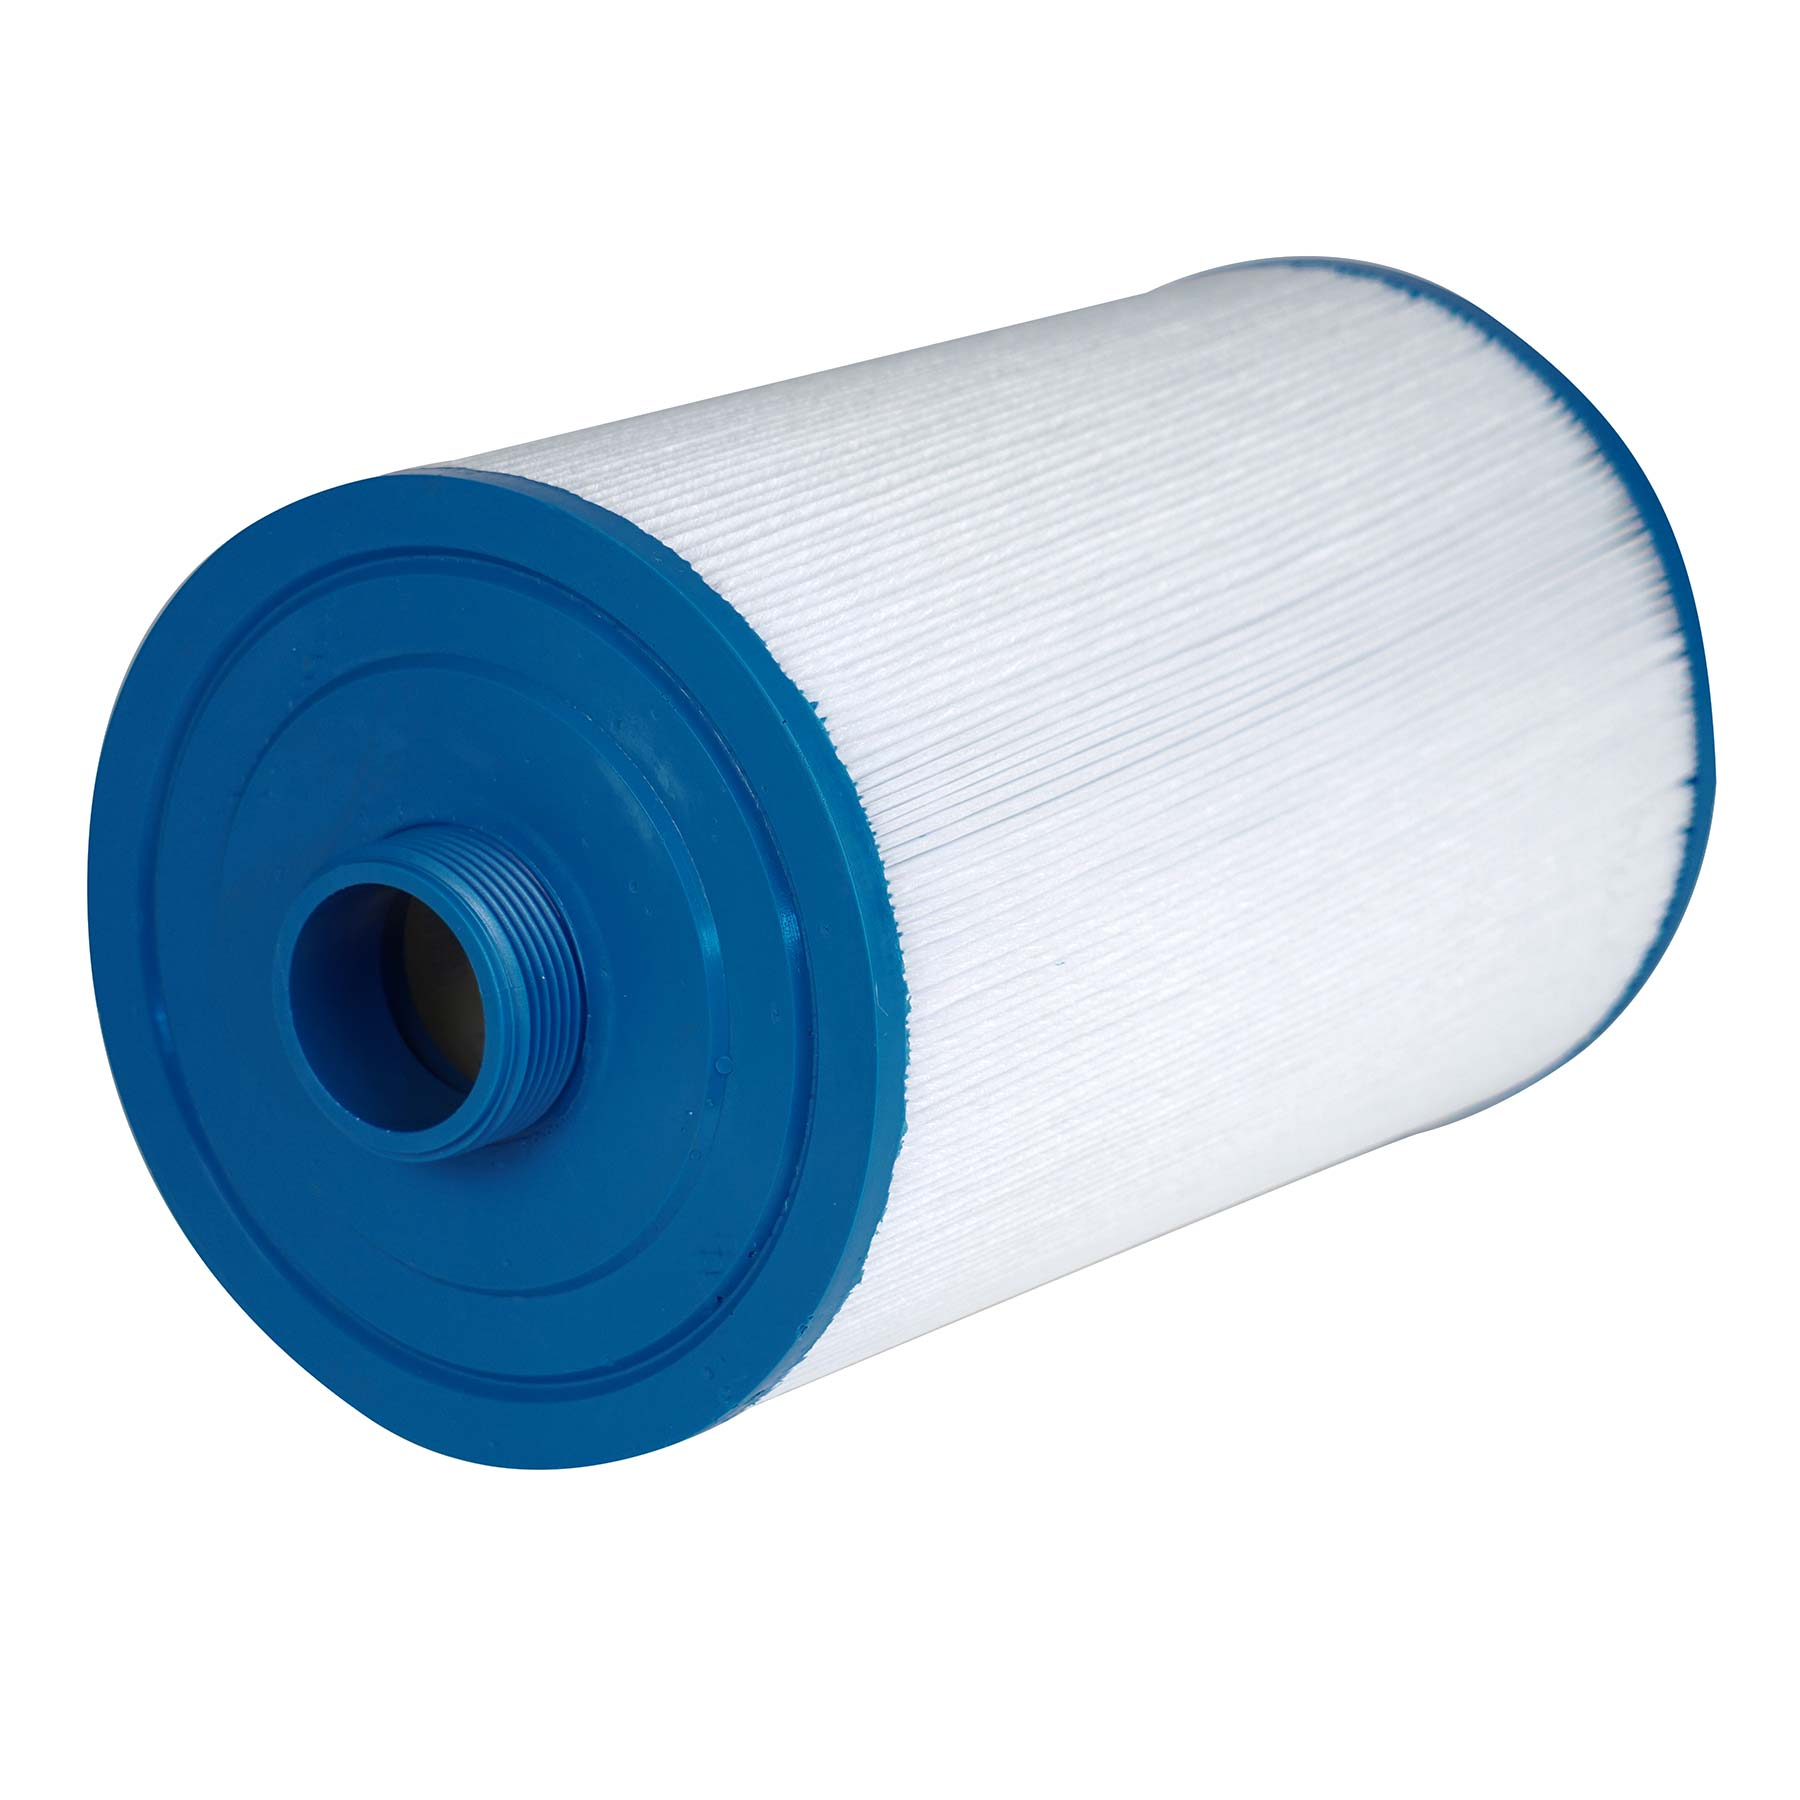 Replaces Unicel 6CH-47, Pleatco PTL47W-P4 • Hot Tub & Spa Filter Cartridge-Filter Cartridge-FilterDeal.com